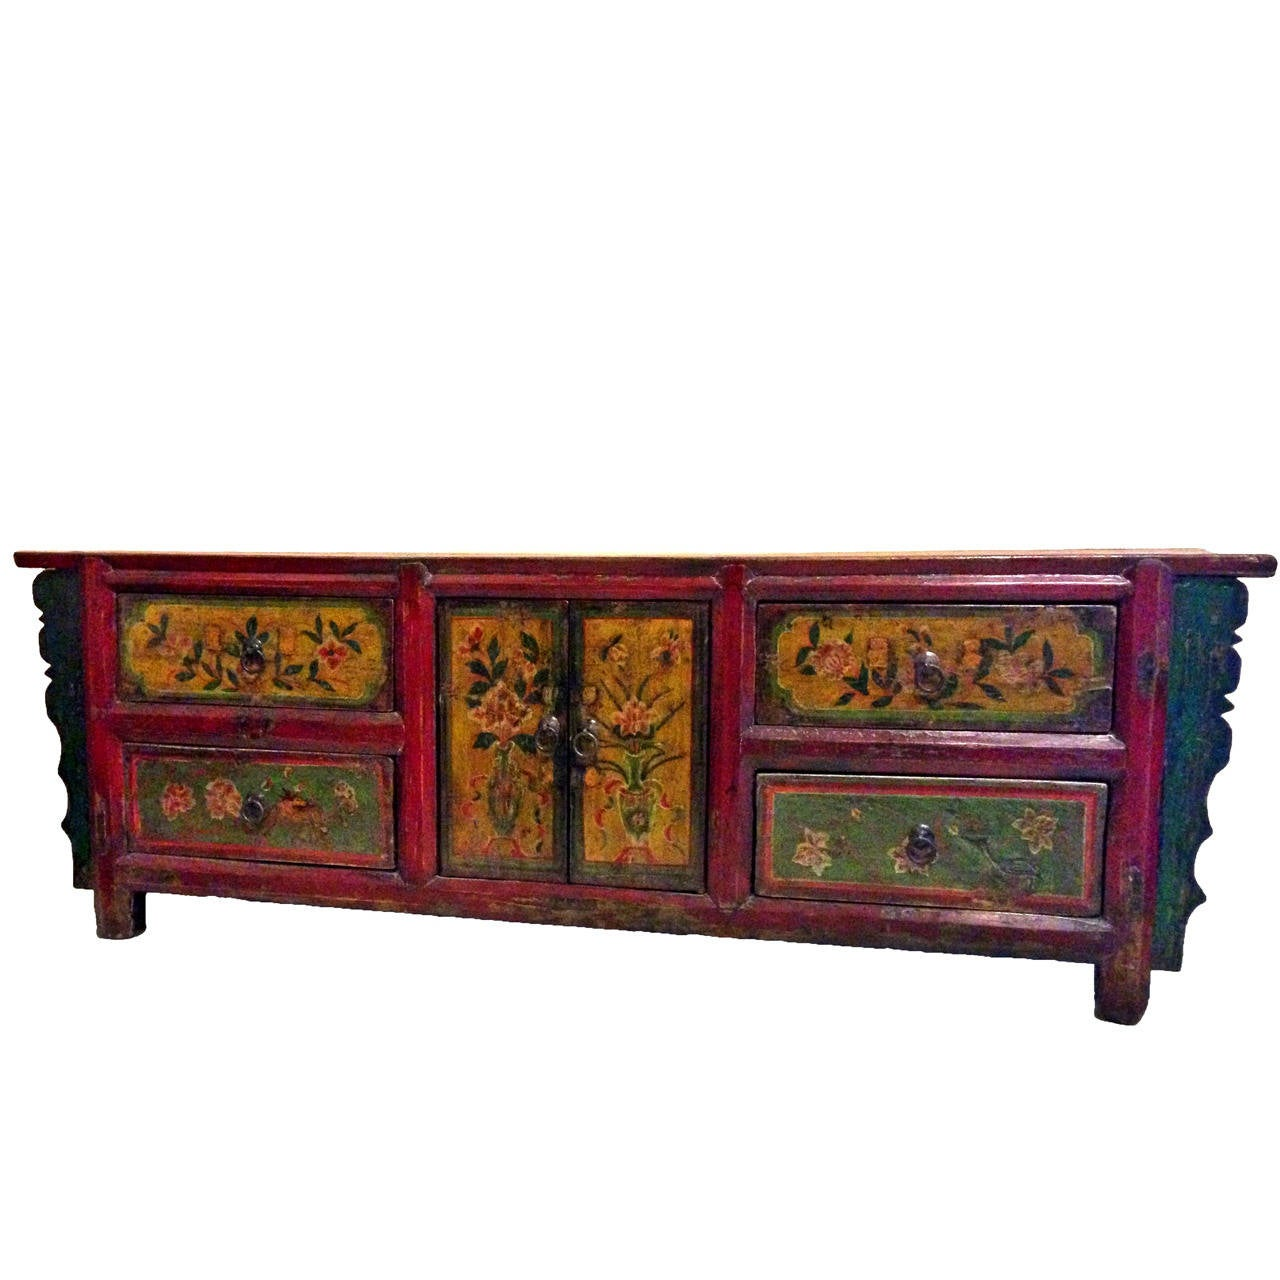 Antique Low Chest 19th Century Chinese Hand Painted At